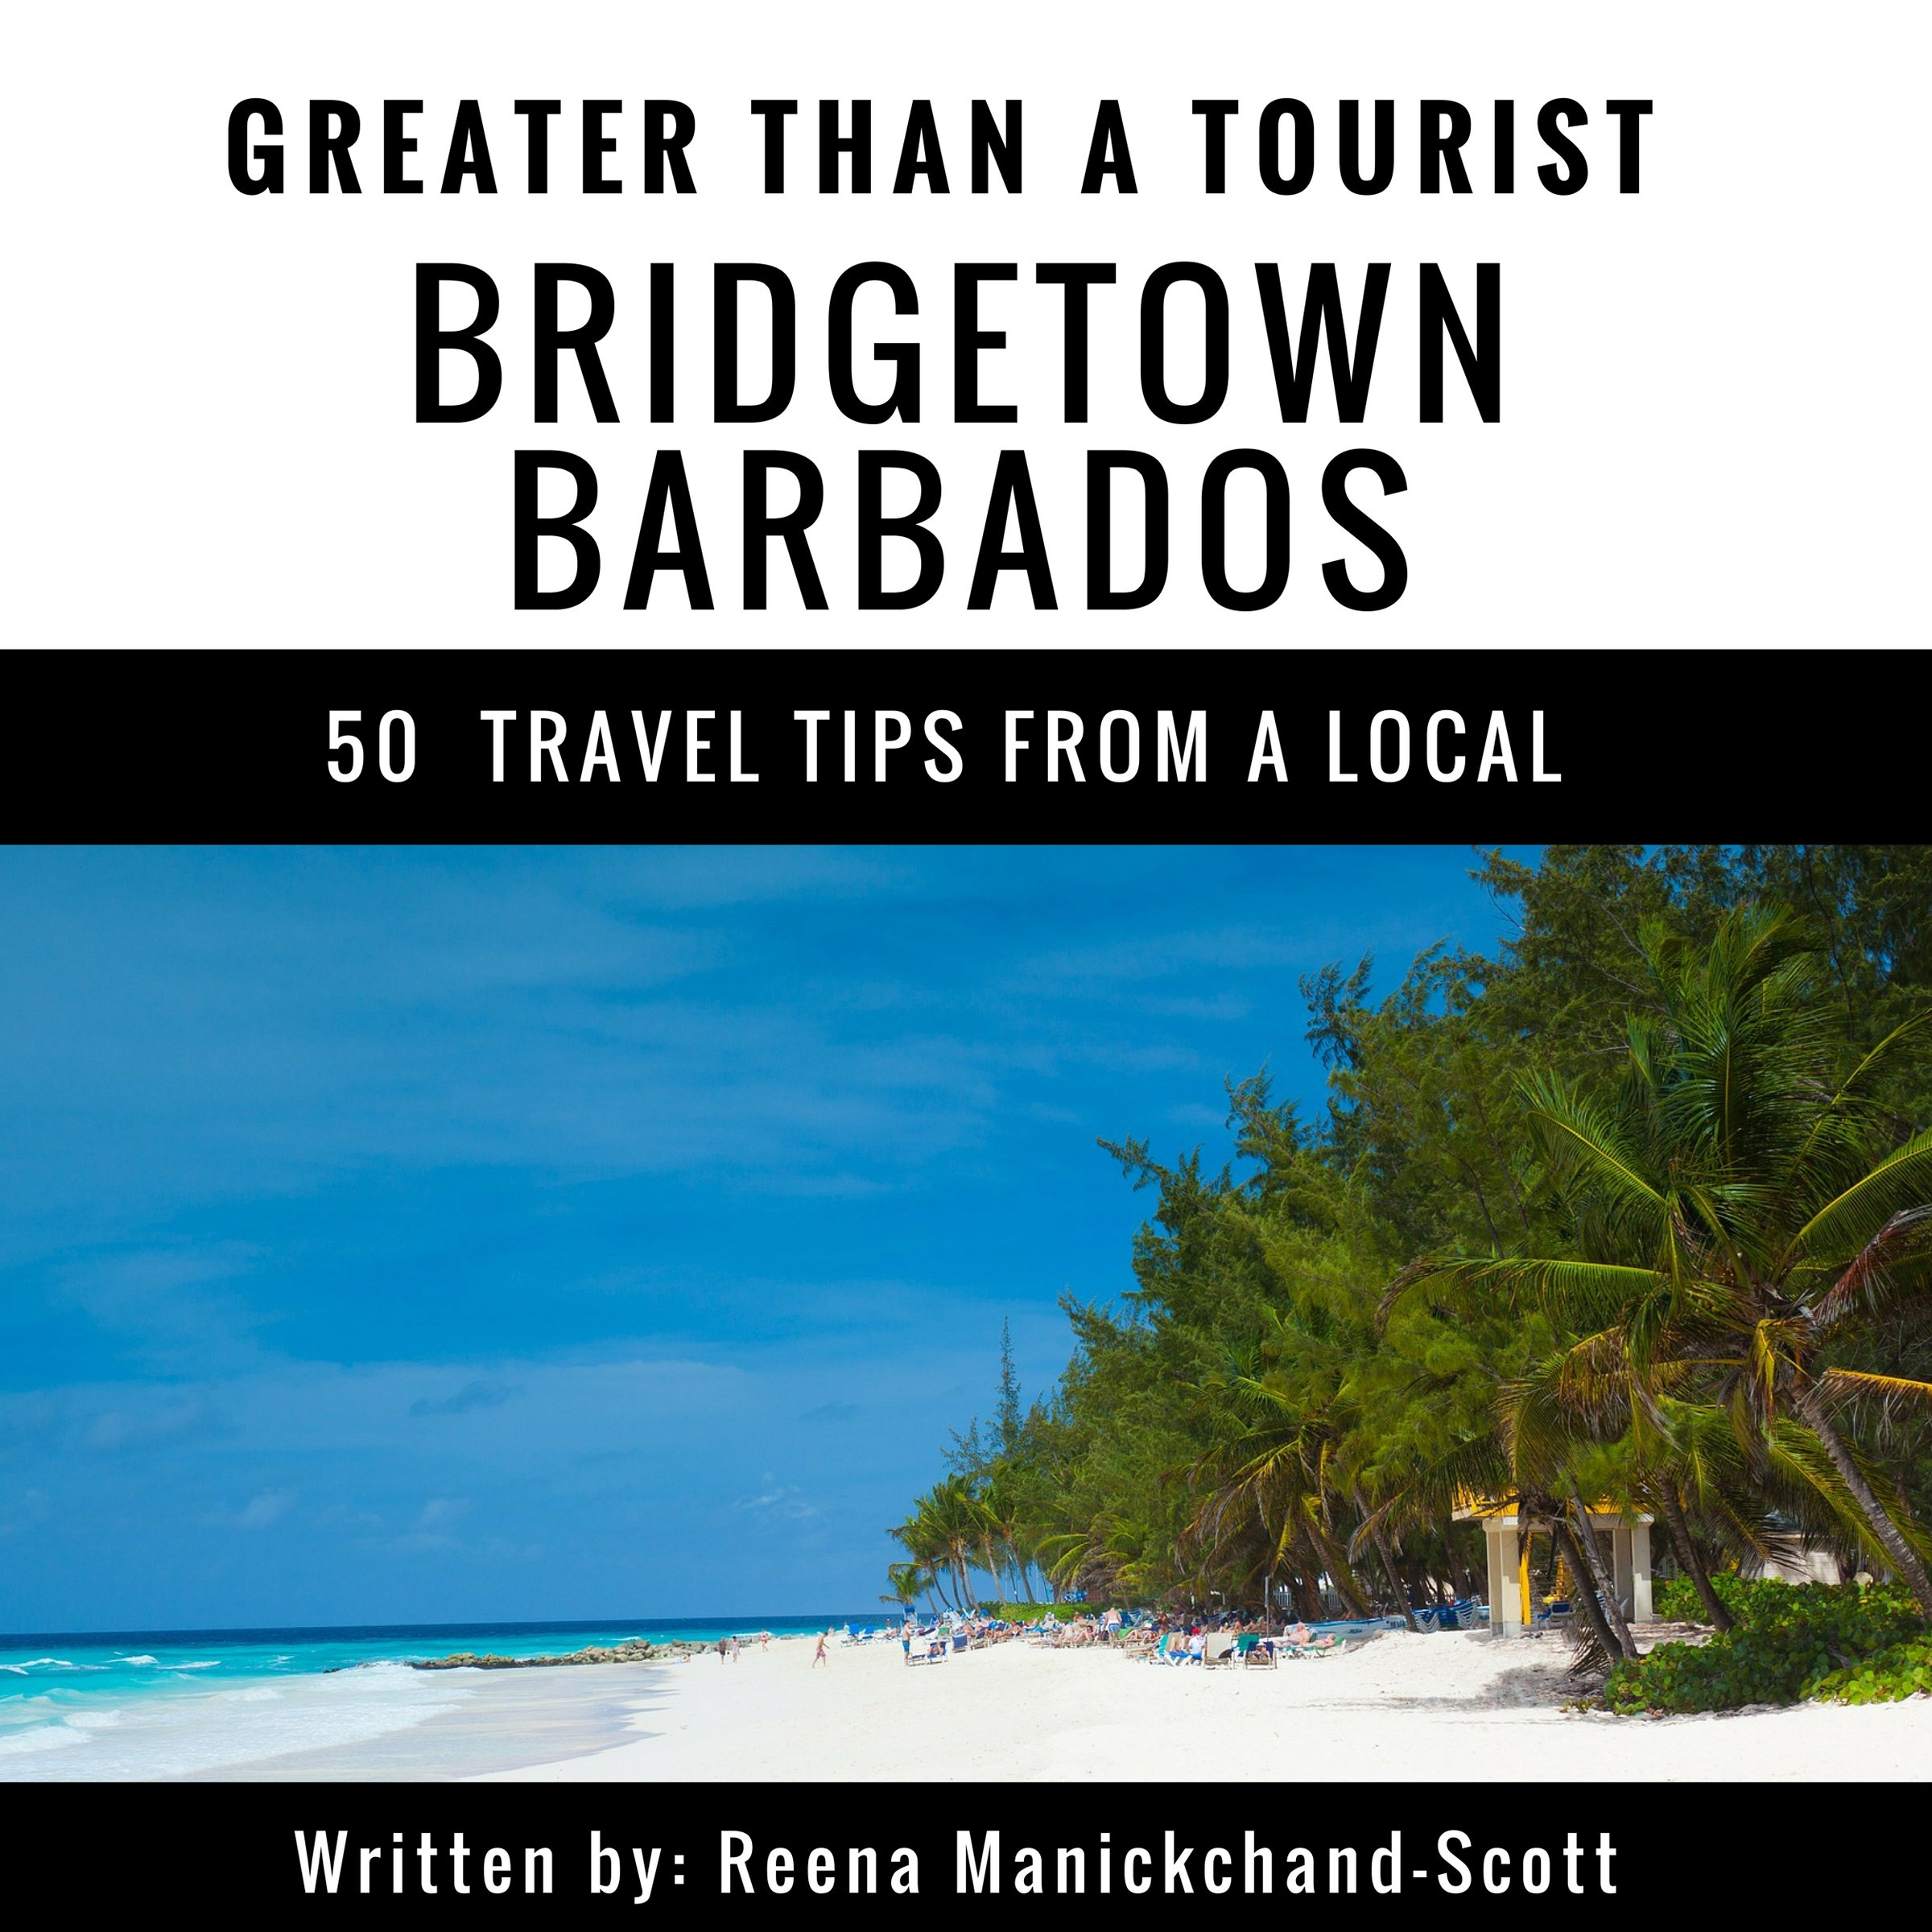 Greater Than A Tourist  Bridgetown Barbados  50 Travel Tips From A Local